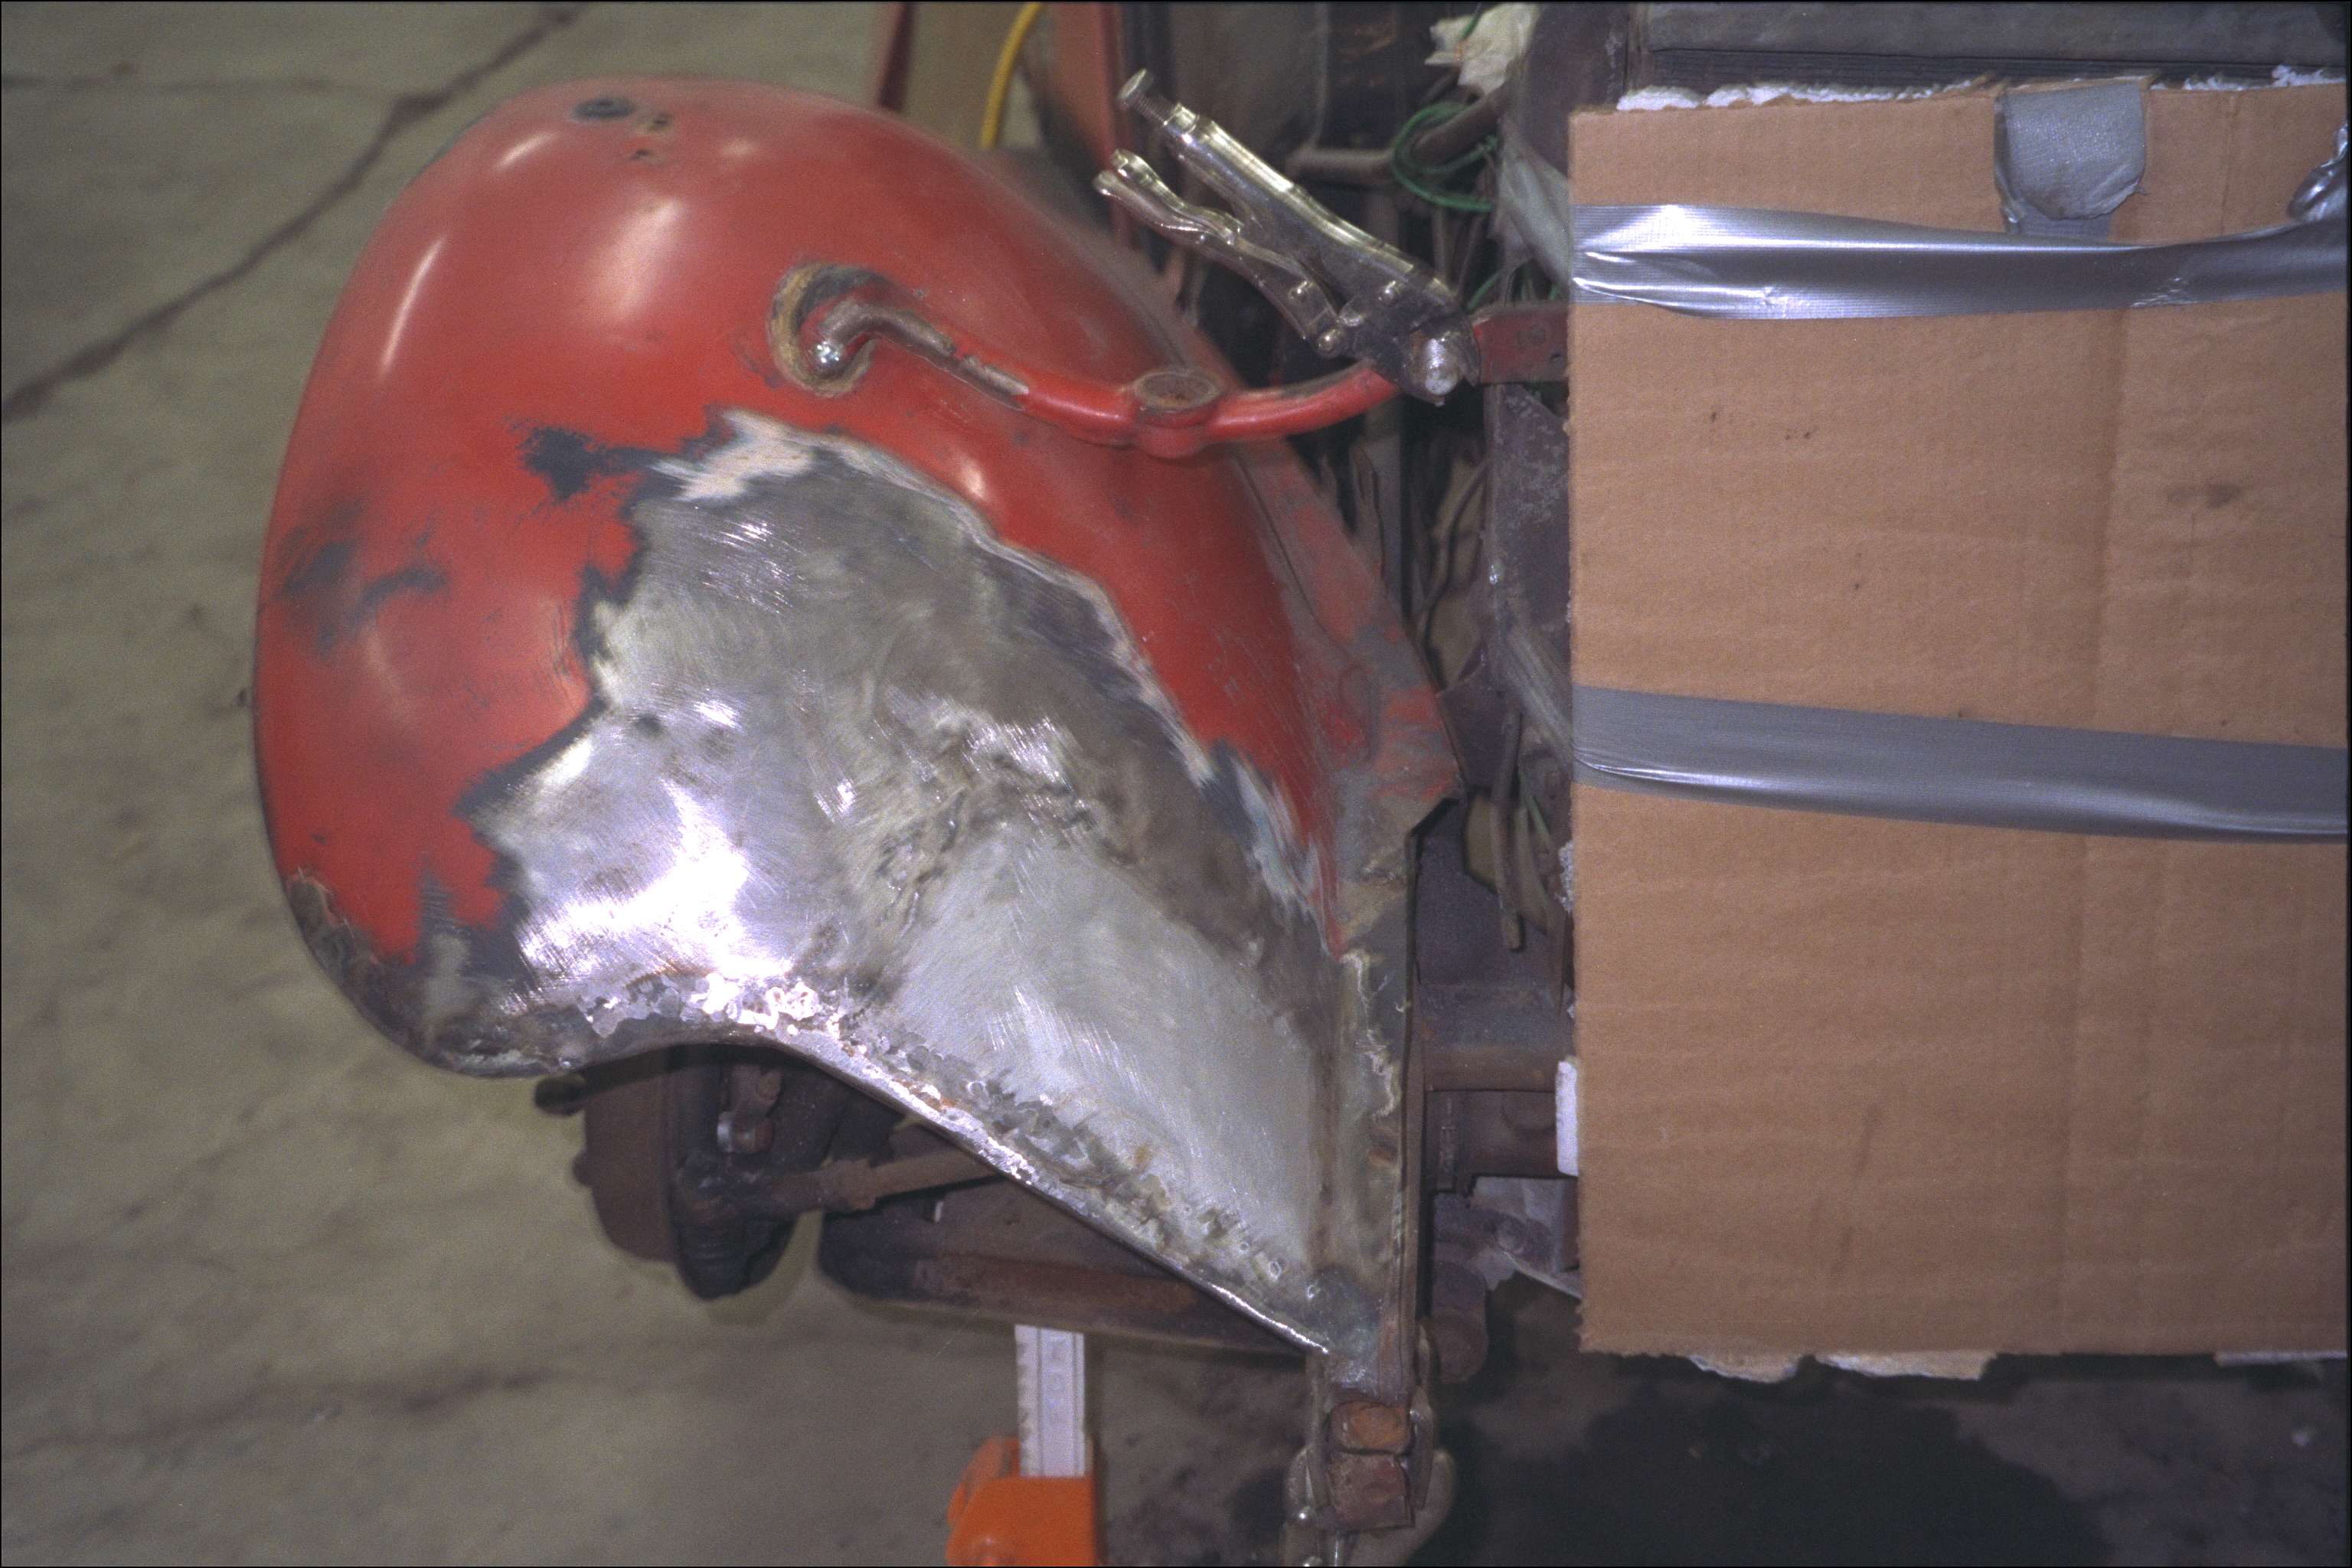 Repair of right front fender tear